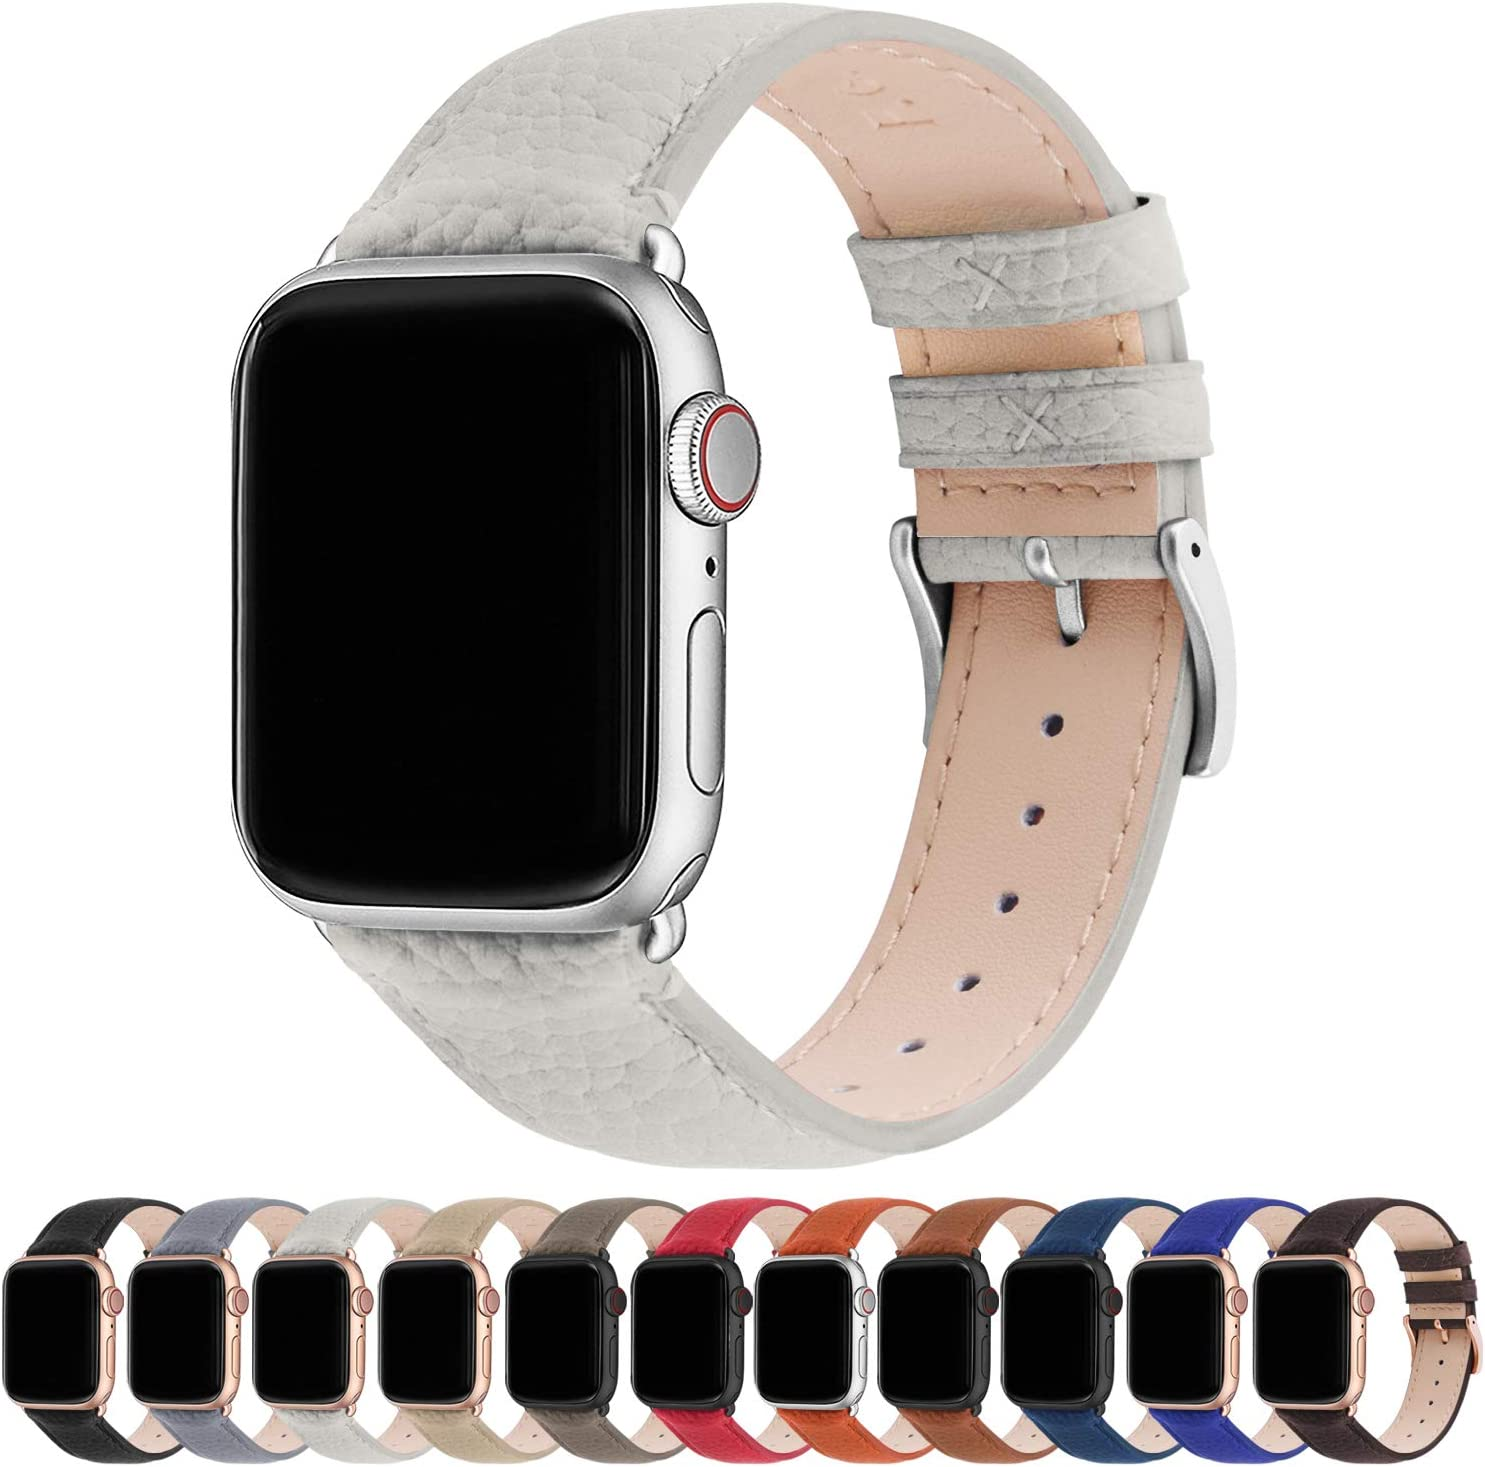 Fullmosa Compatible Apple Watch Band 44mm 42mm 40mm 38mm Leather Compatible iWatch Band/Strap Compatible Apple Watch SE & Series 6 5 4 3 2 1, 38mm 40mm, Ivory White + Silver Buckle